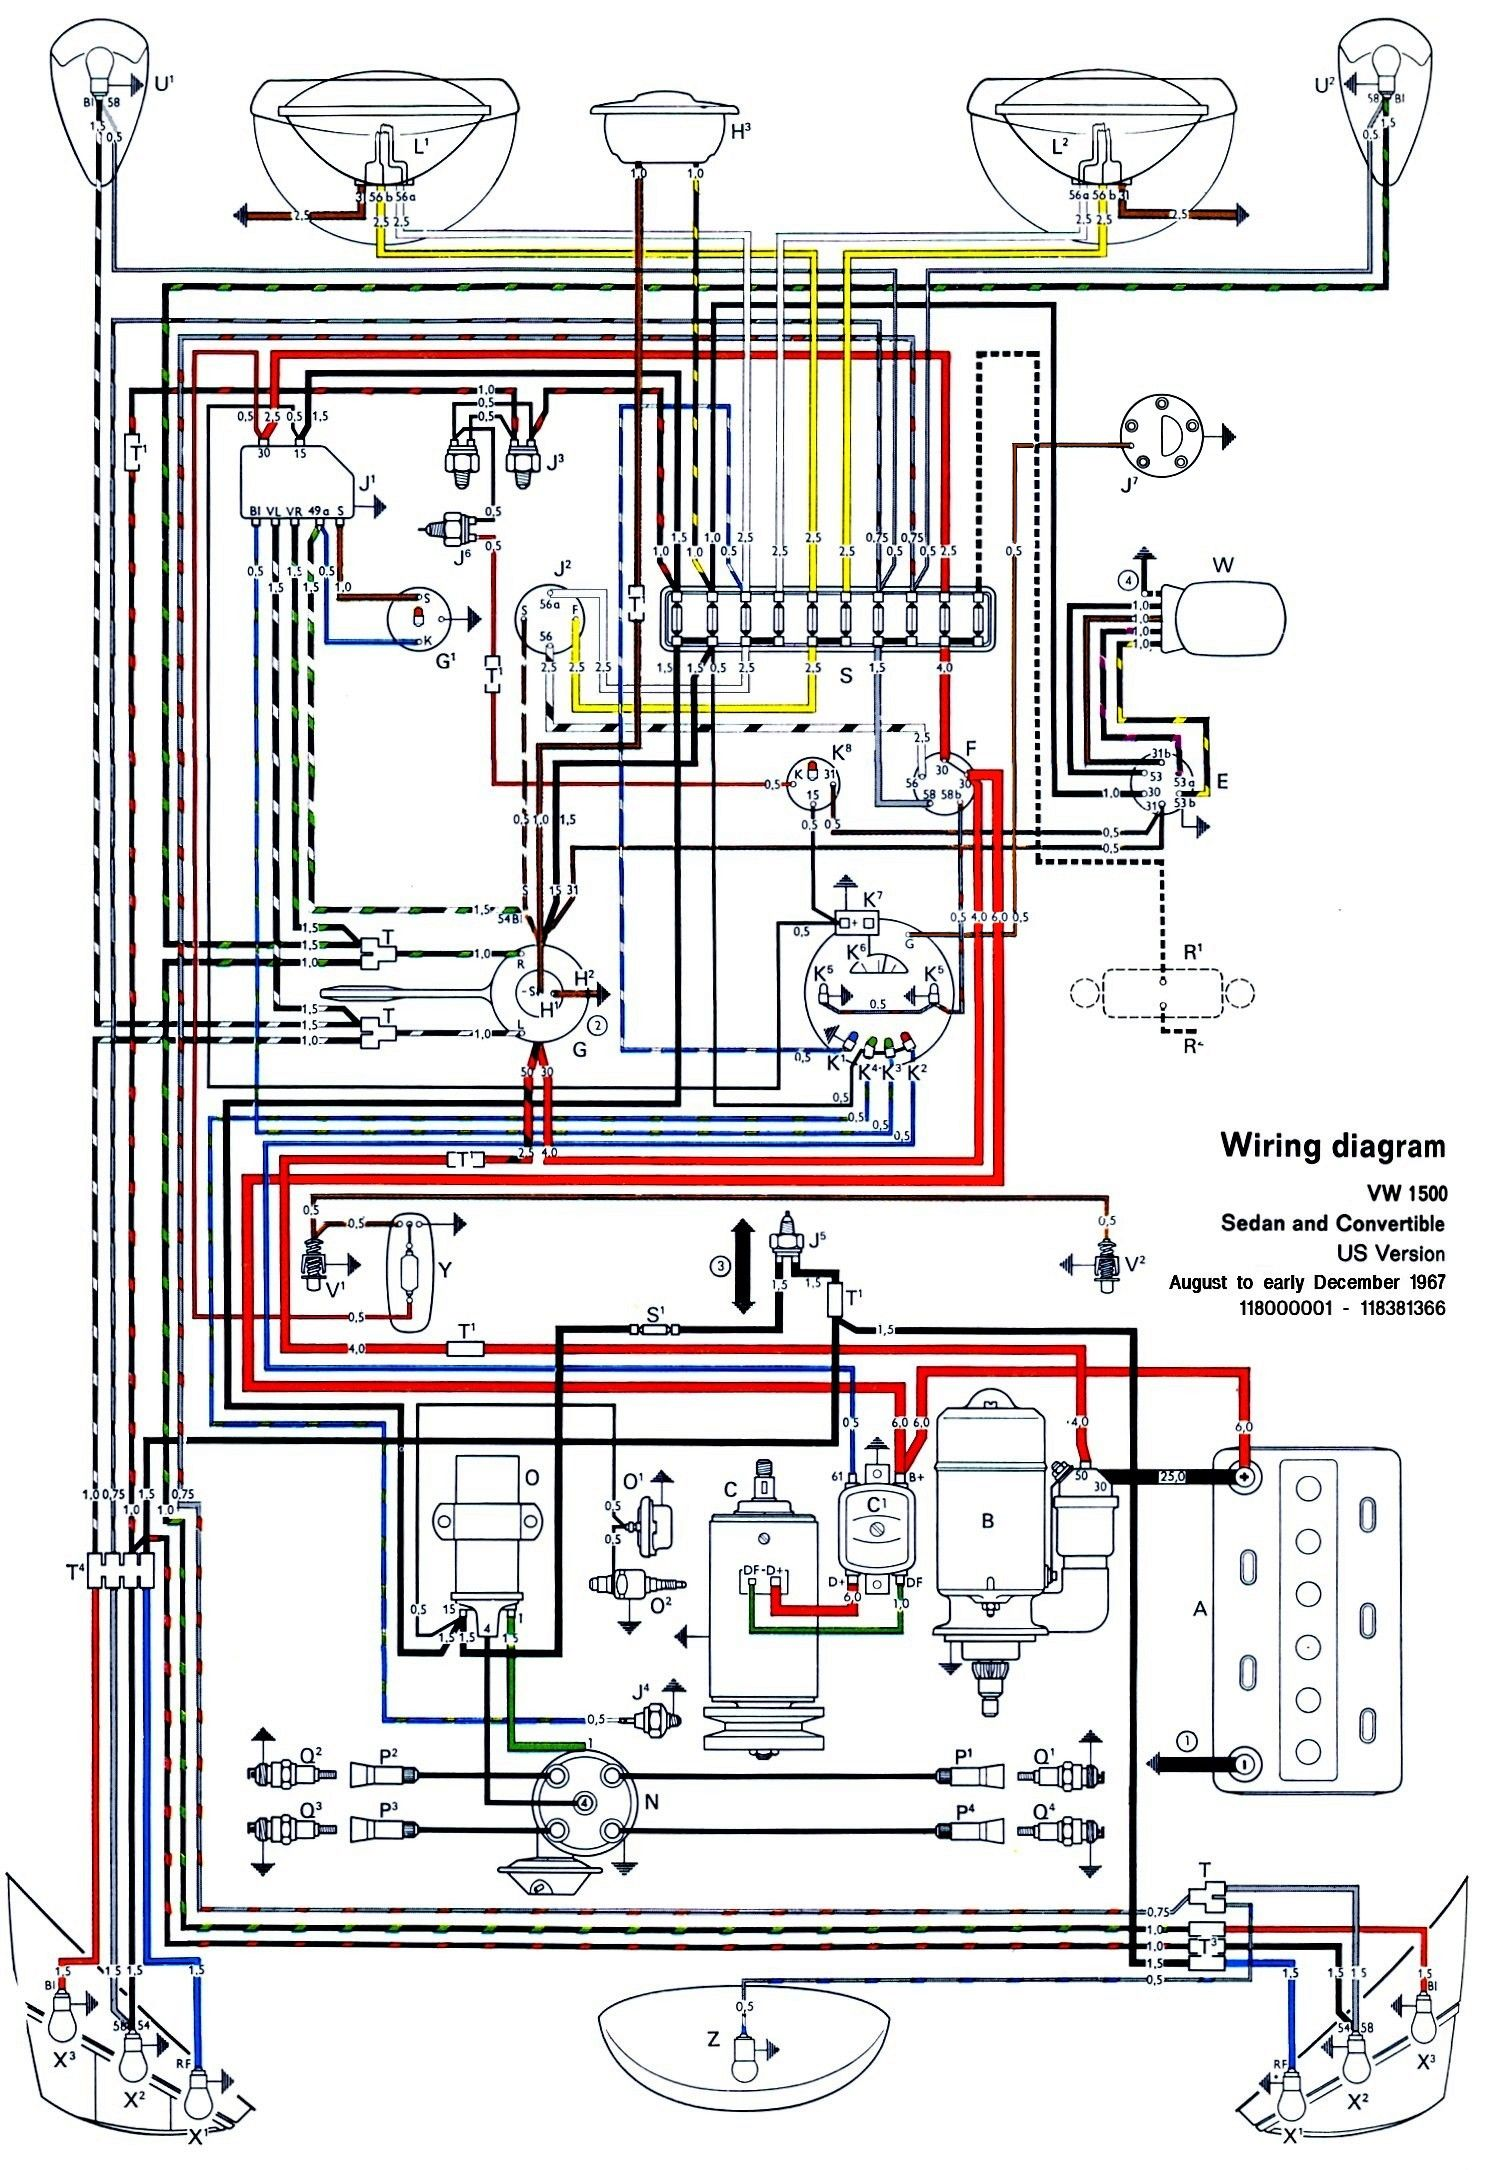 Unique Wiring Plan #diagram #wiringdiagram #diagramming #Diagramm #visuals  #visualisation #graphical Check… | Electrical diagram, Diagram, Electrical  wiring diagram